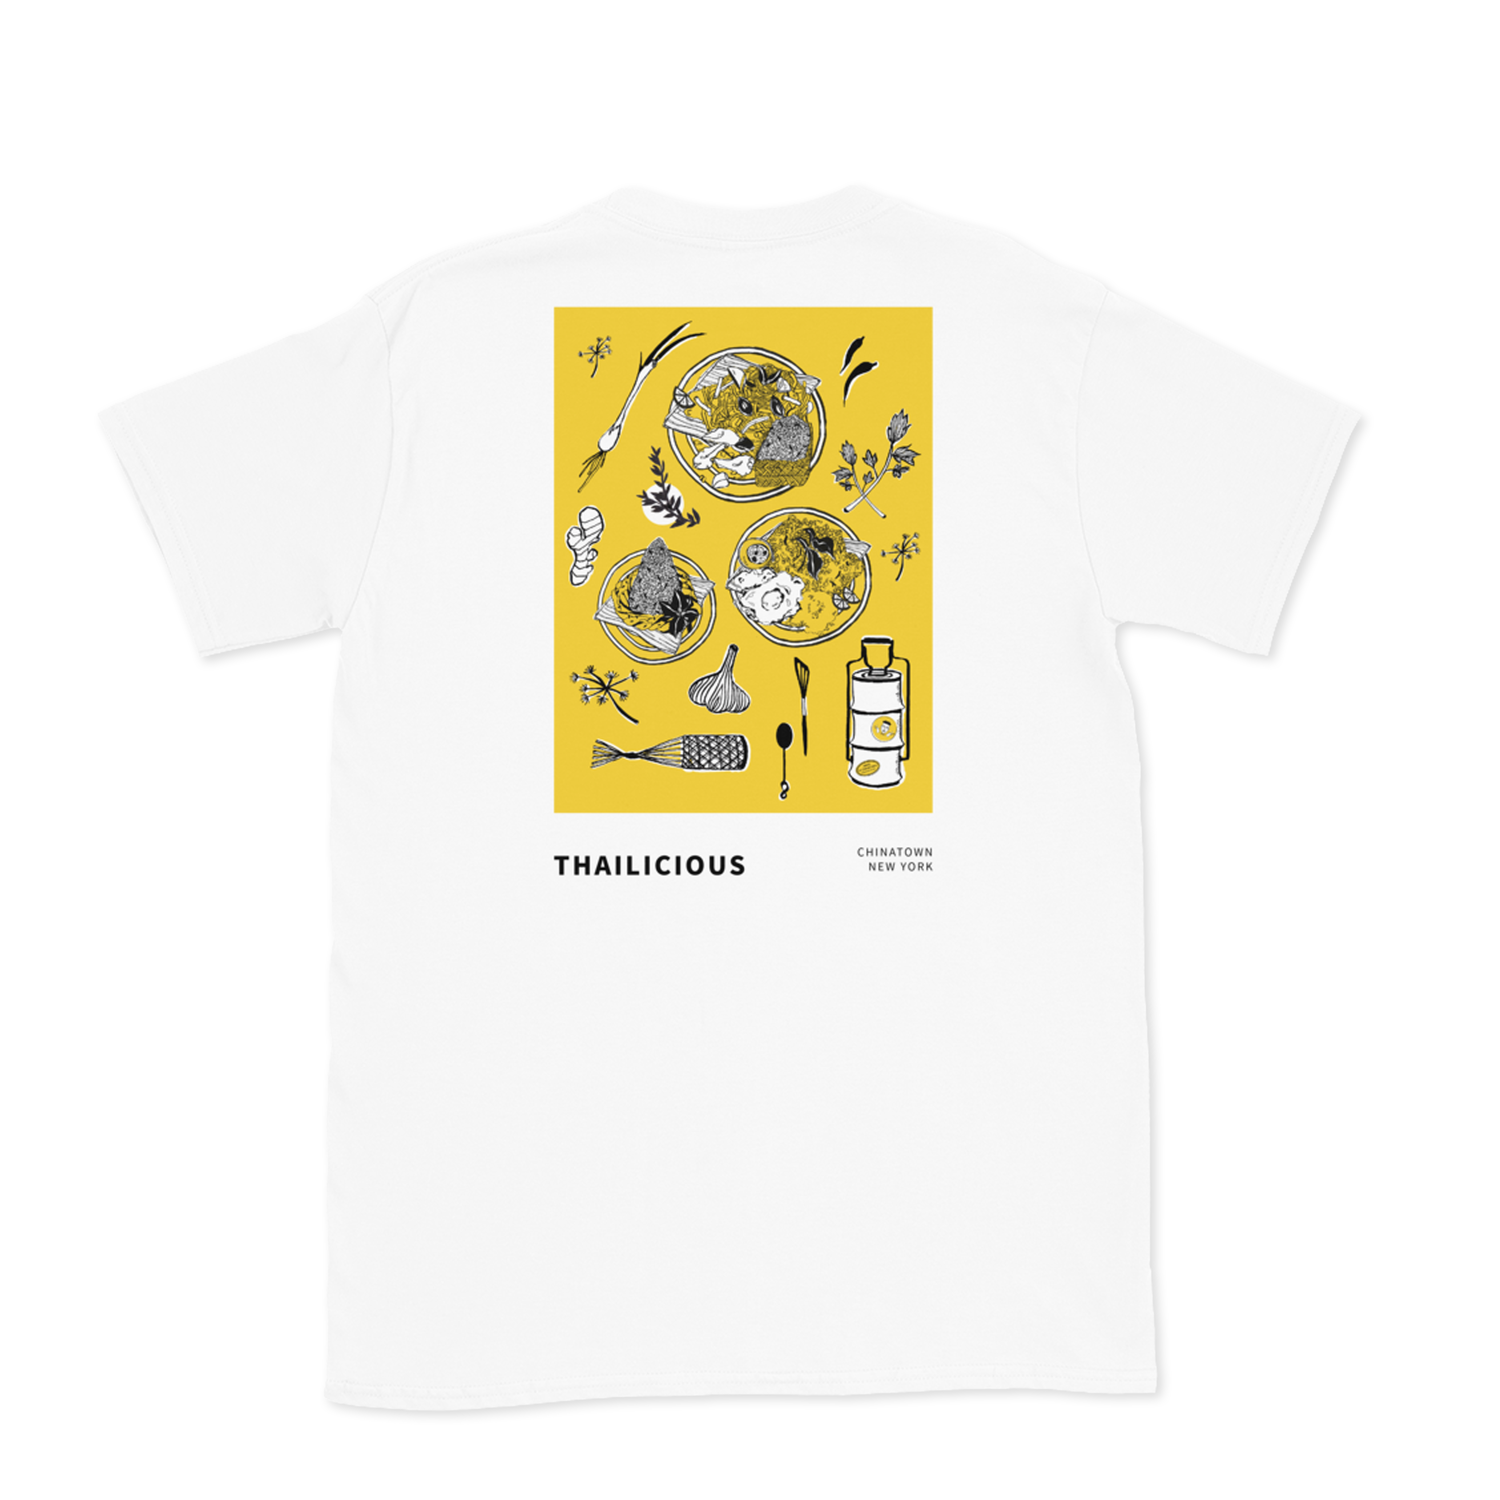 shopify-thailicious_product-image-Tshirt_01.png